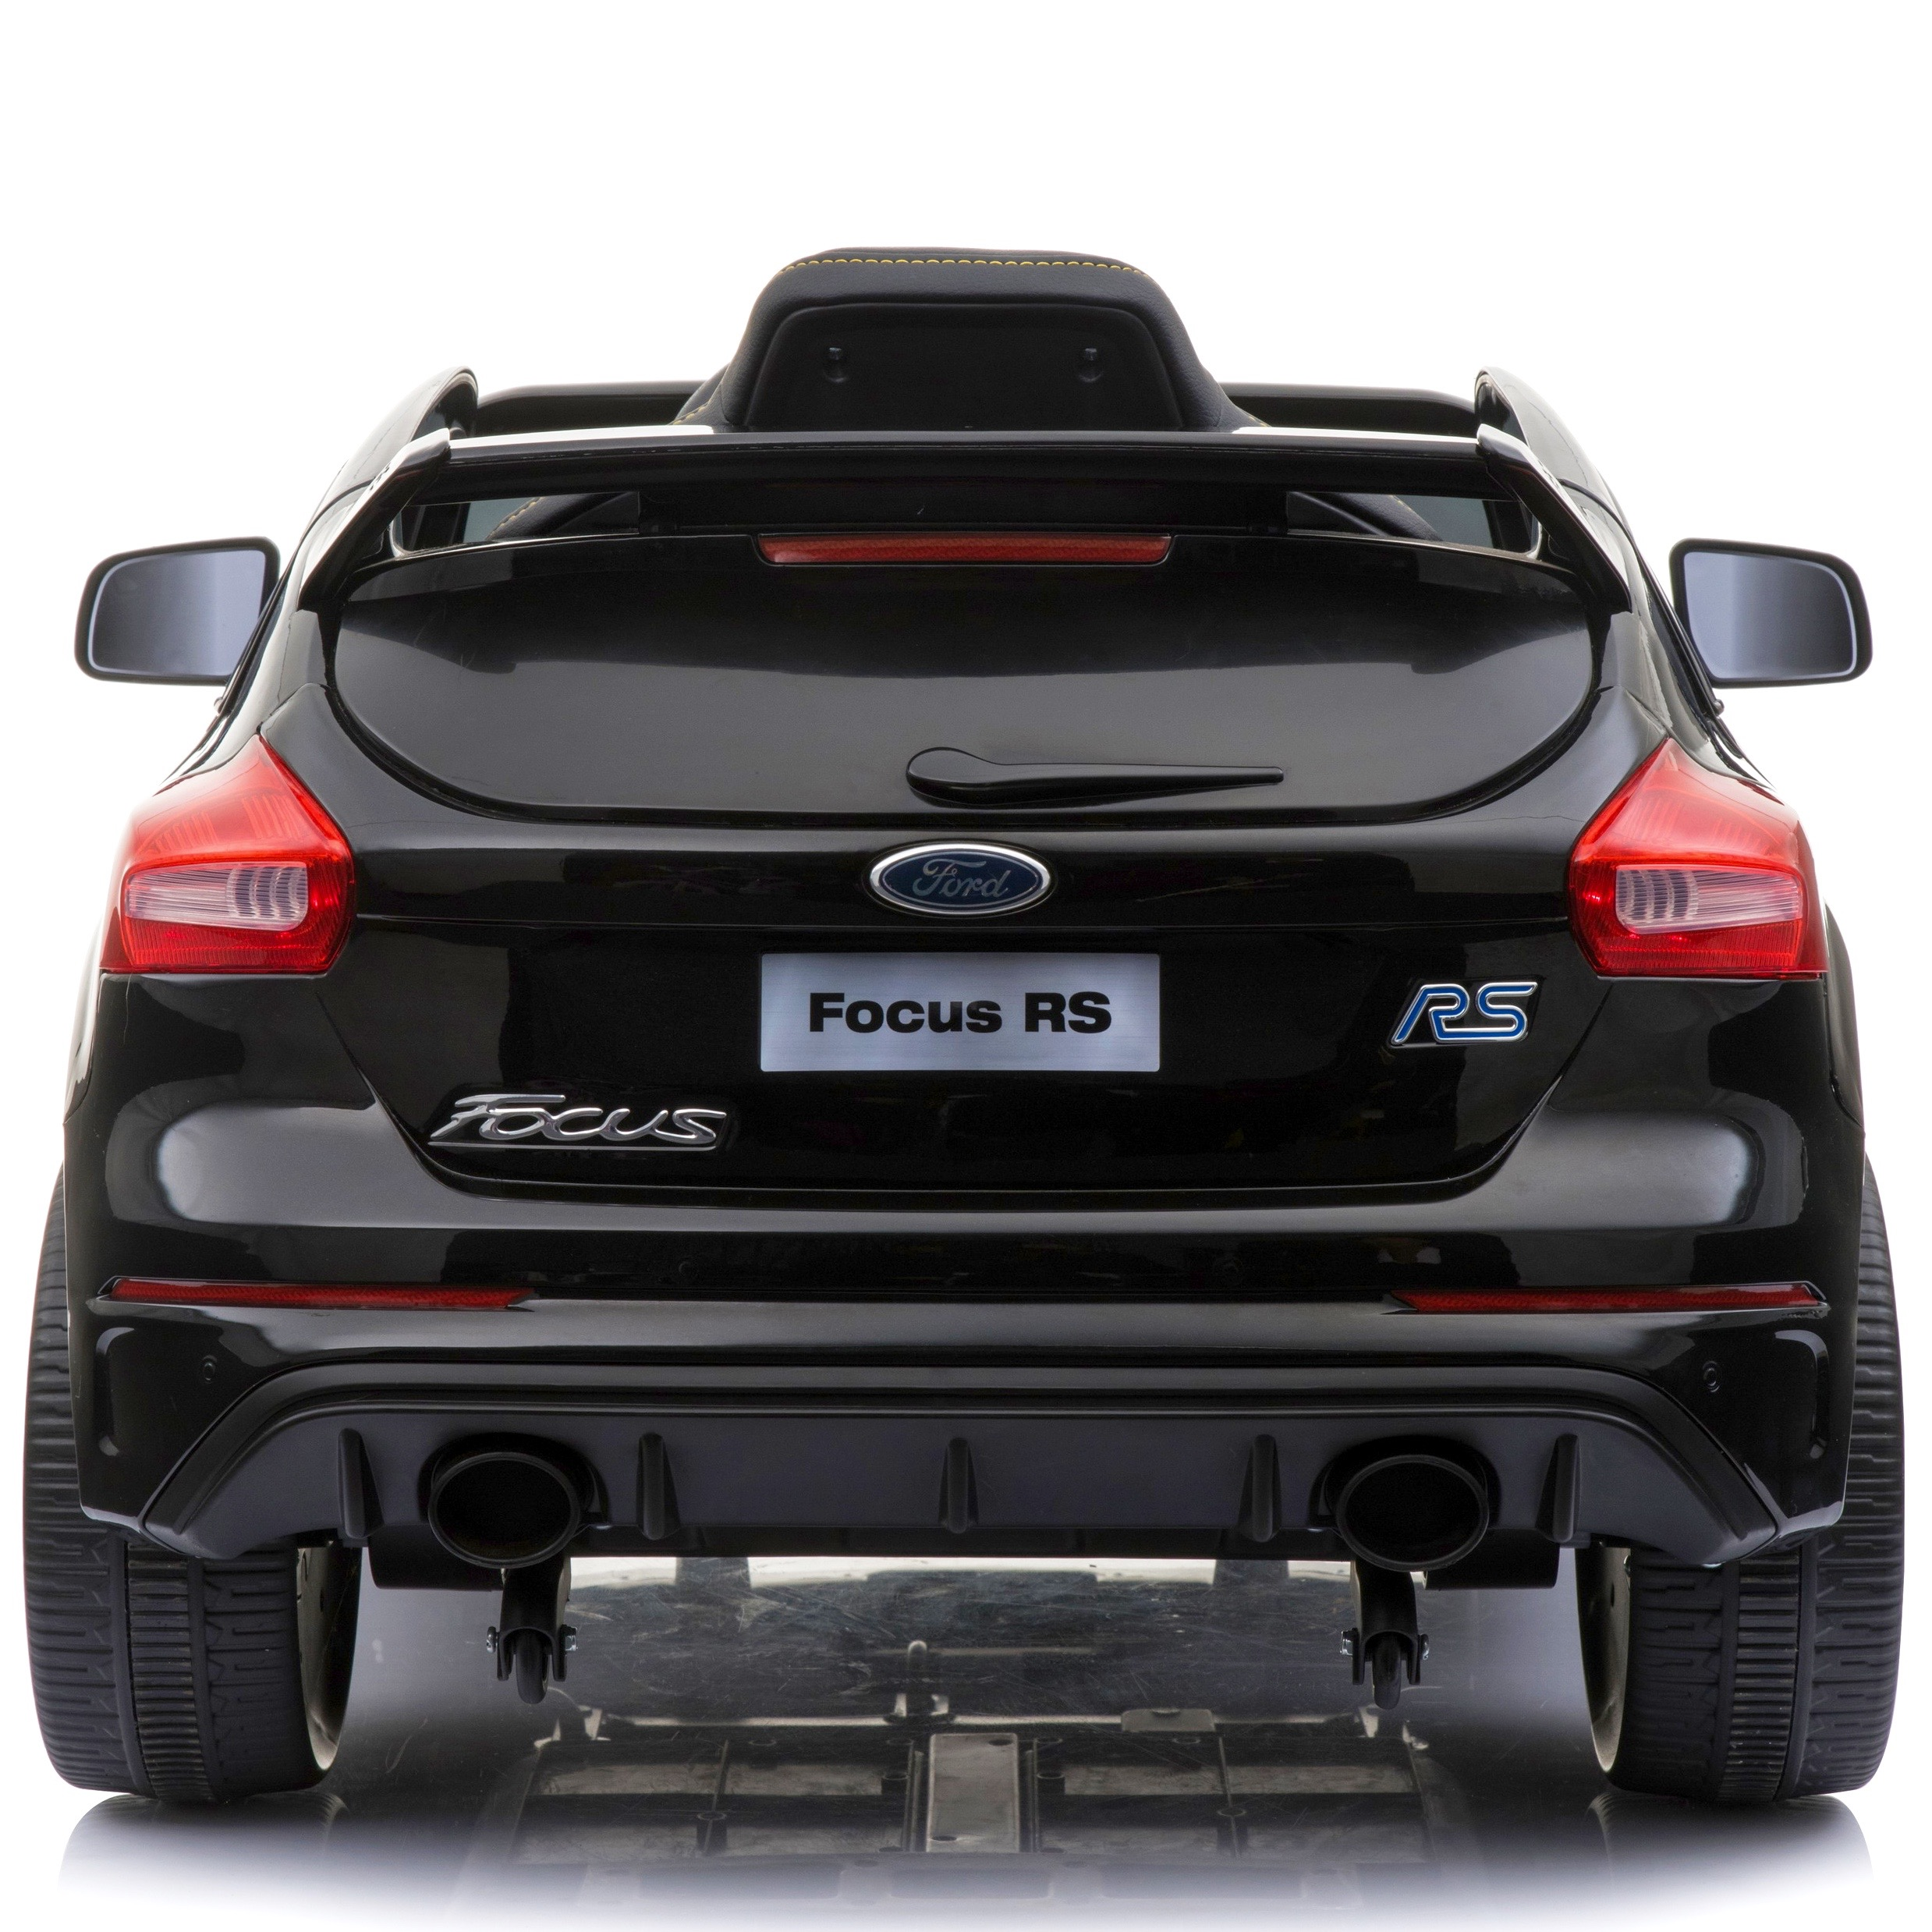 Licensed Ford Focus Rs 12v Children S Battery Operated Ride On Car Black